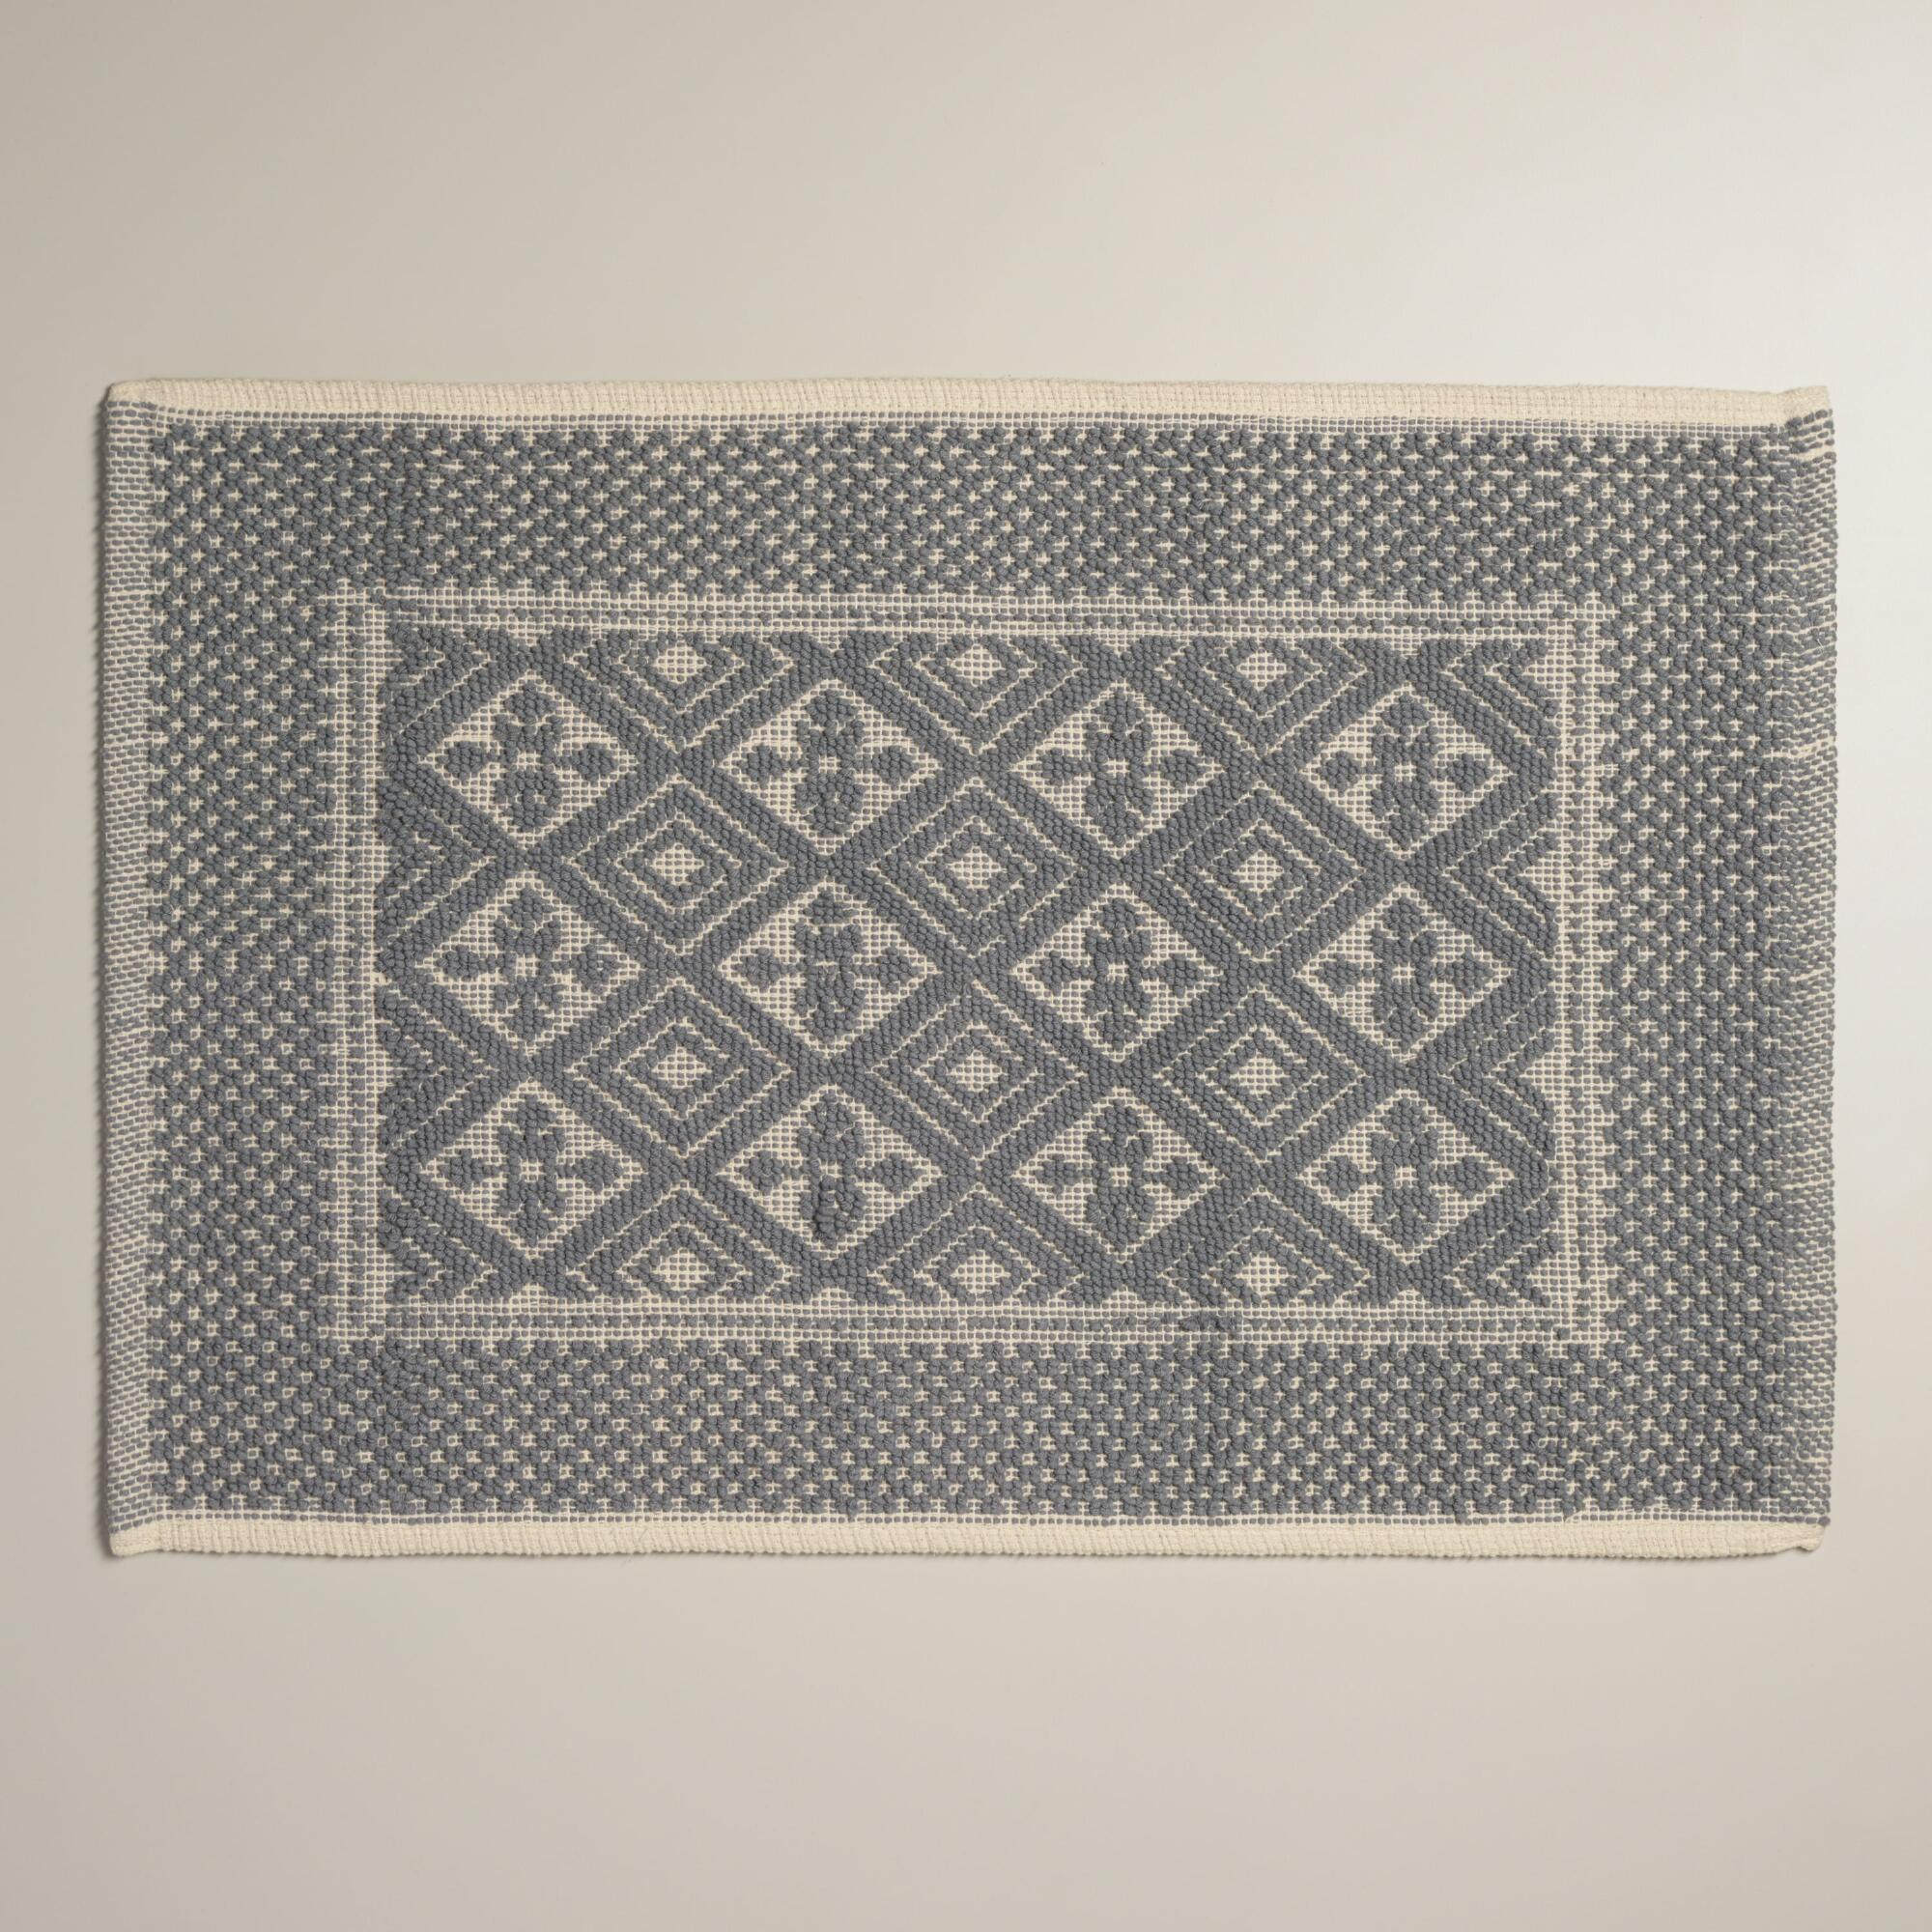 12 Stylish Bath Mats And Rugs Absorbent Rugs And Mats